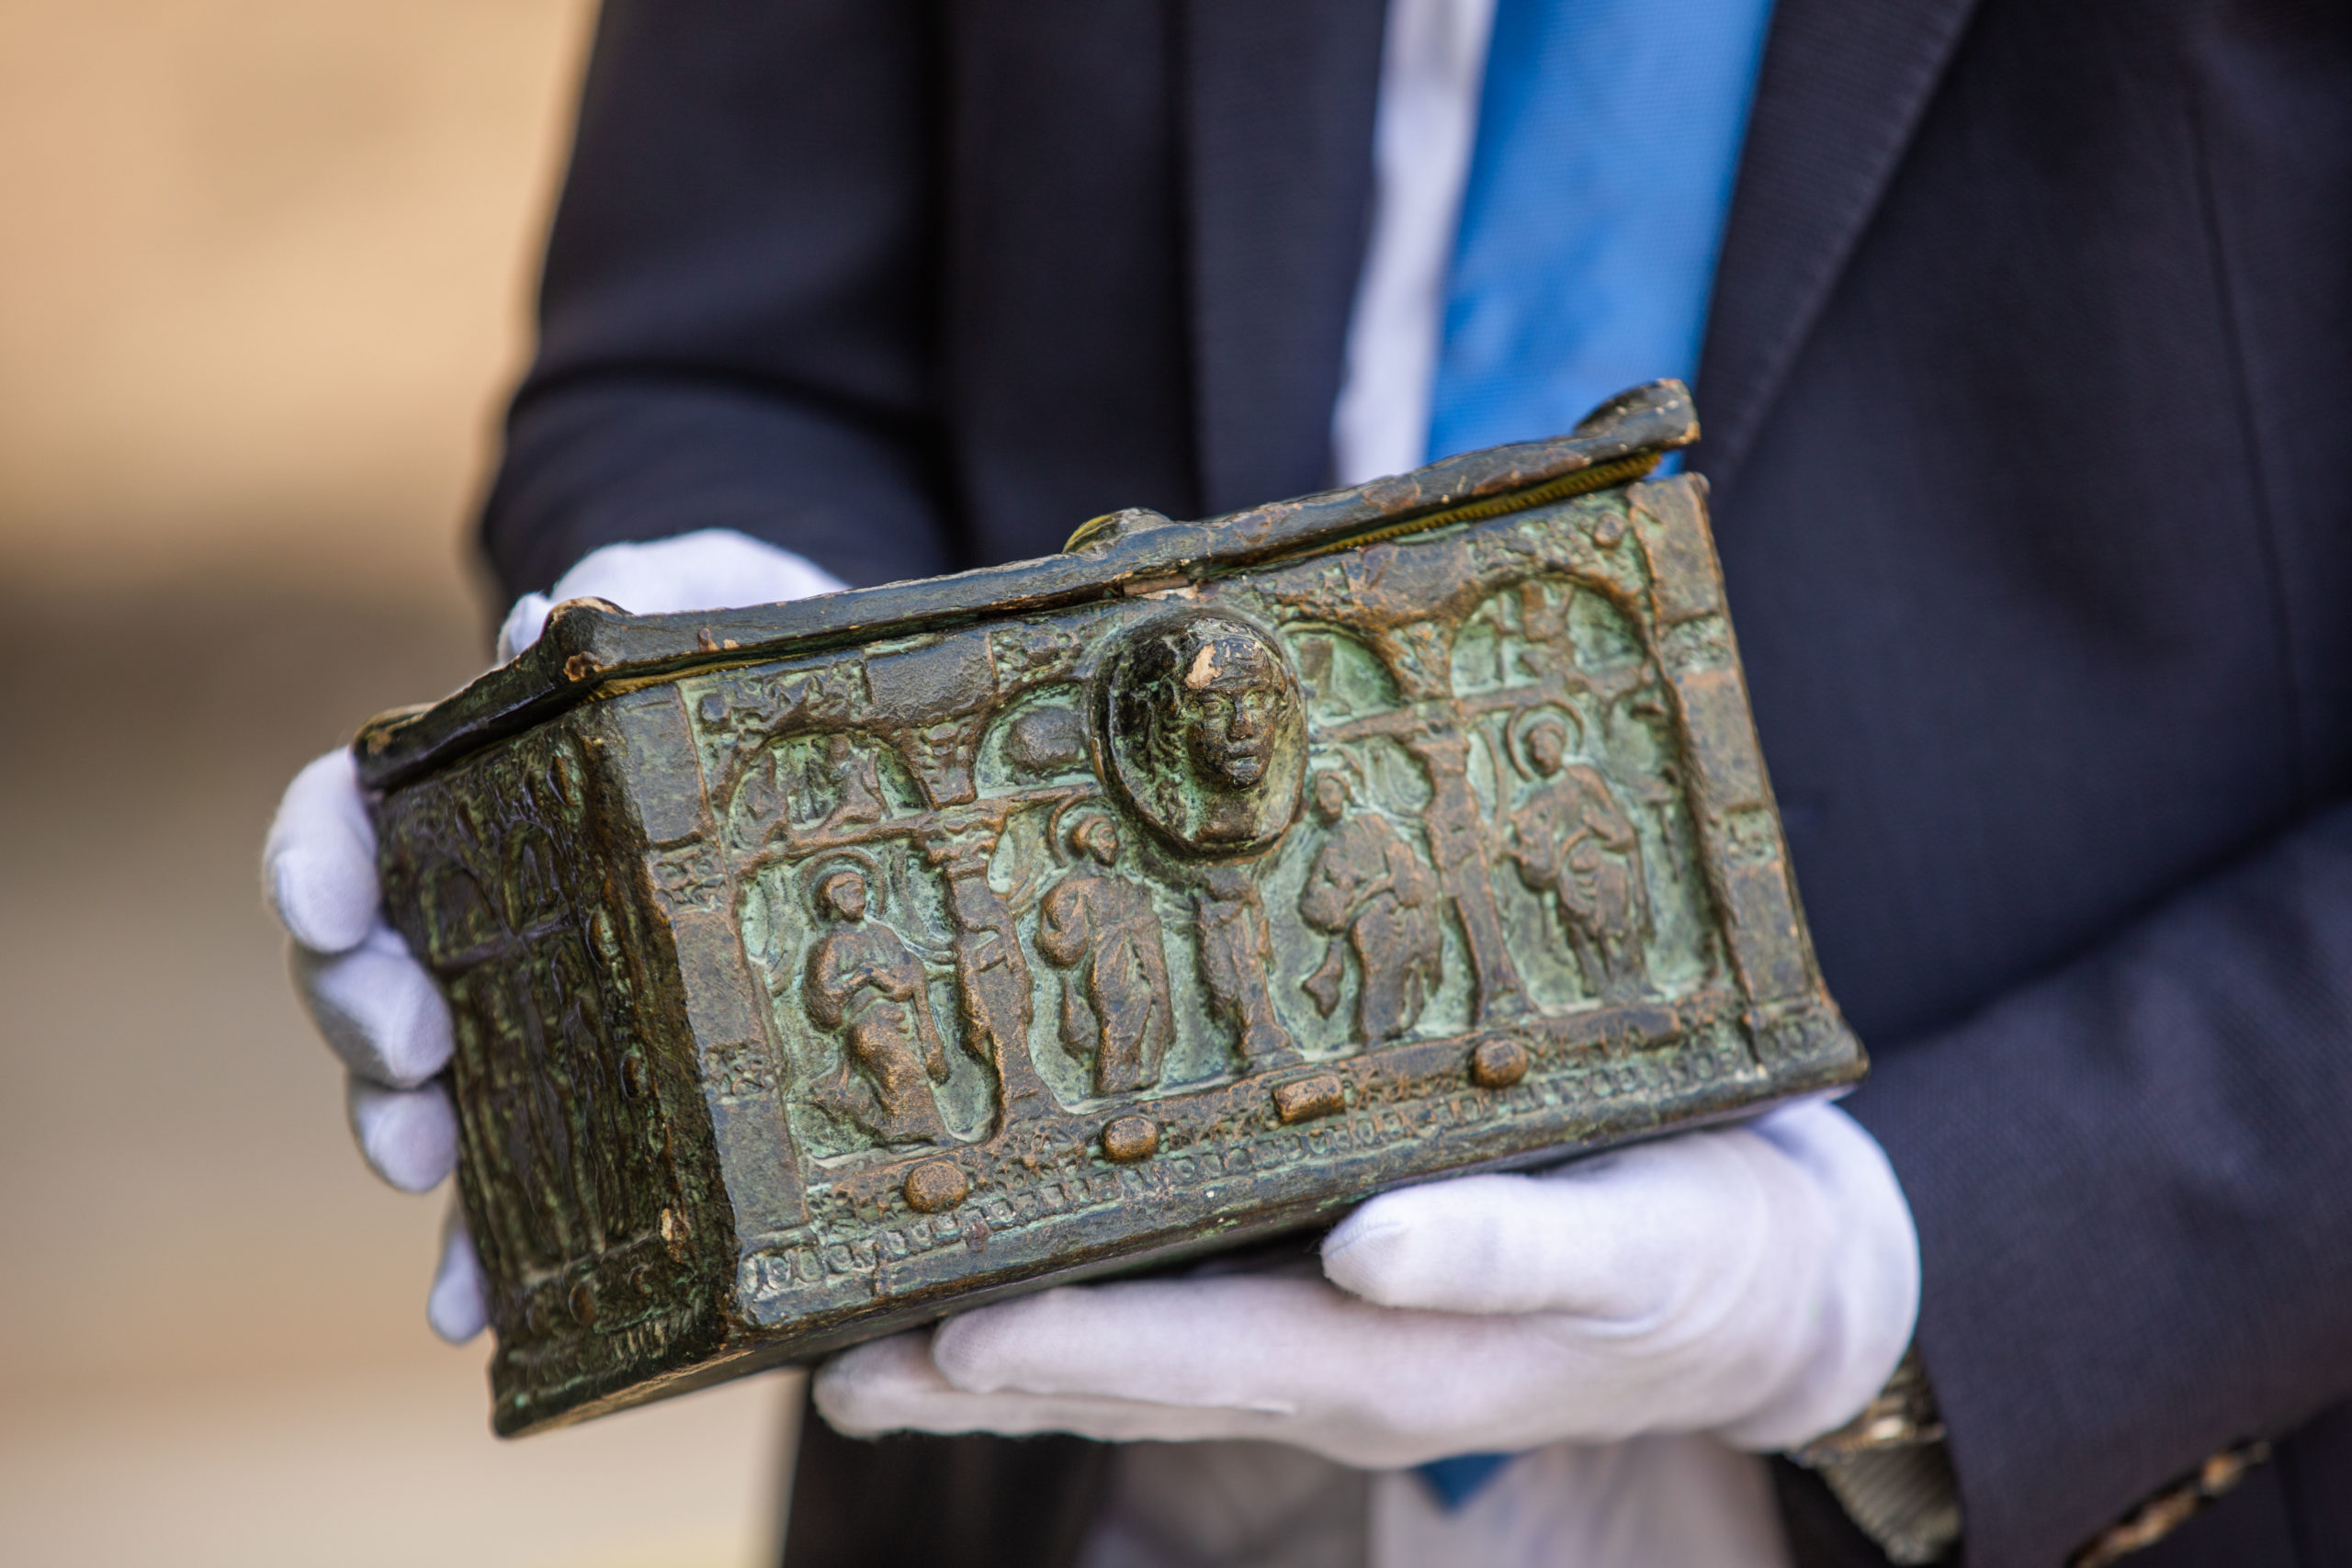 The Charter Chest discovered at a house in Alyth